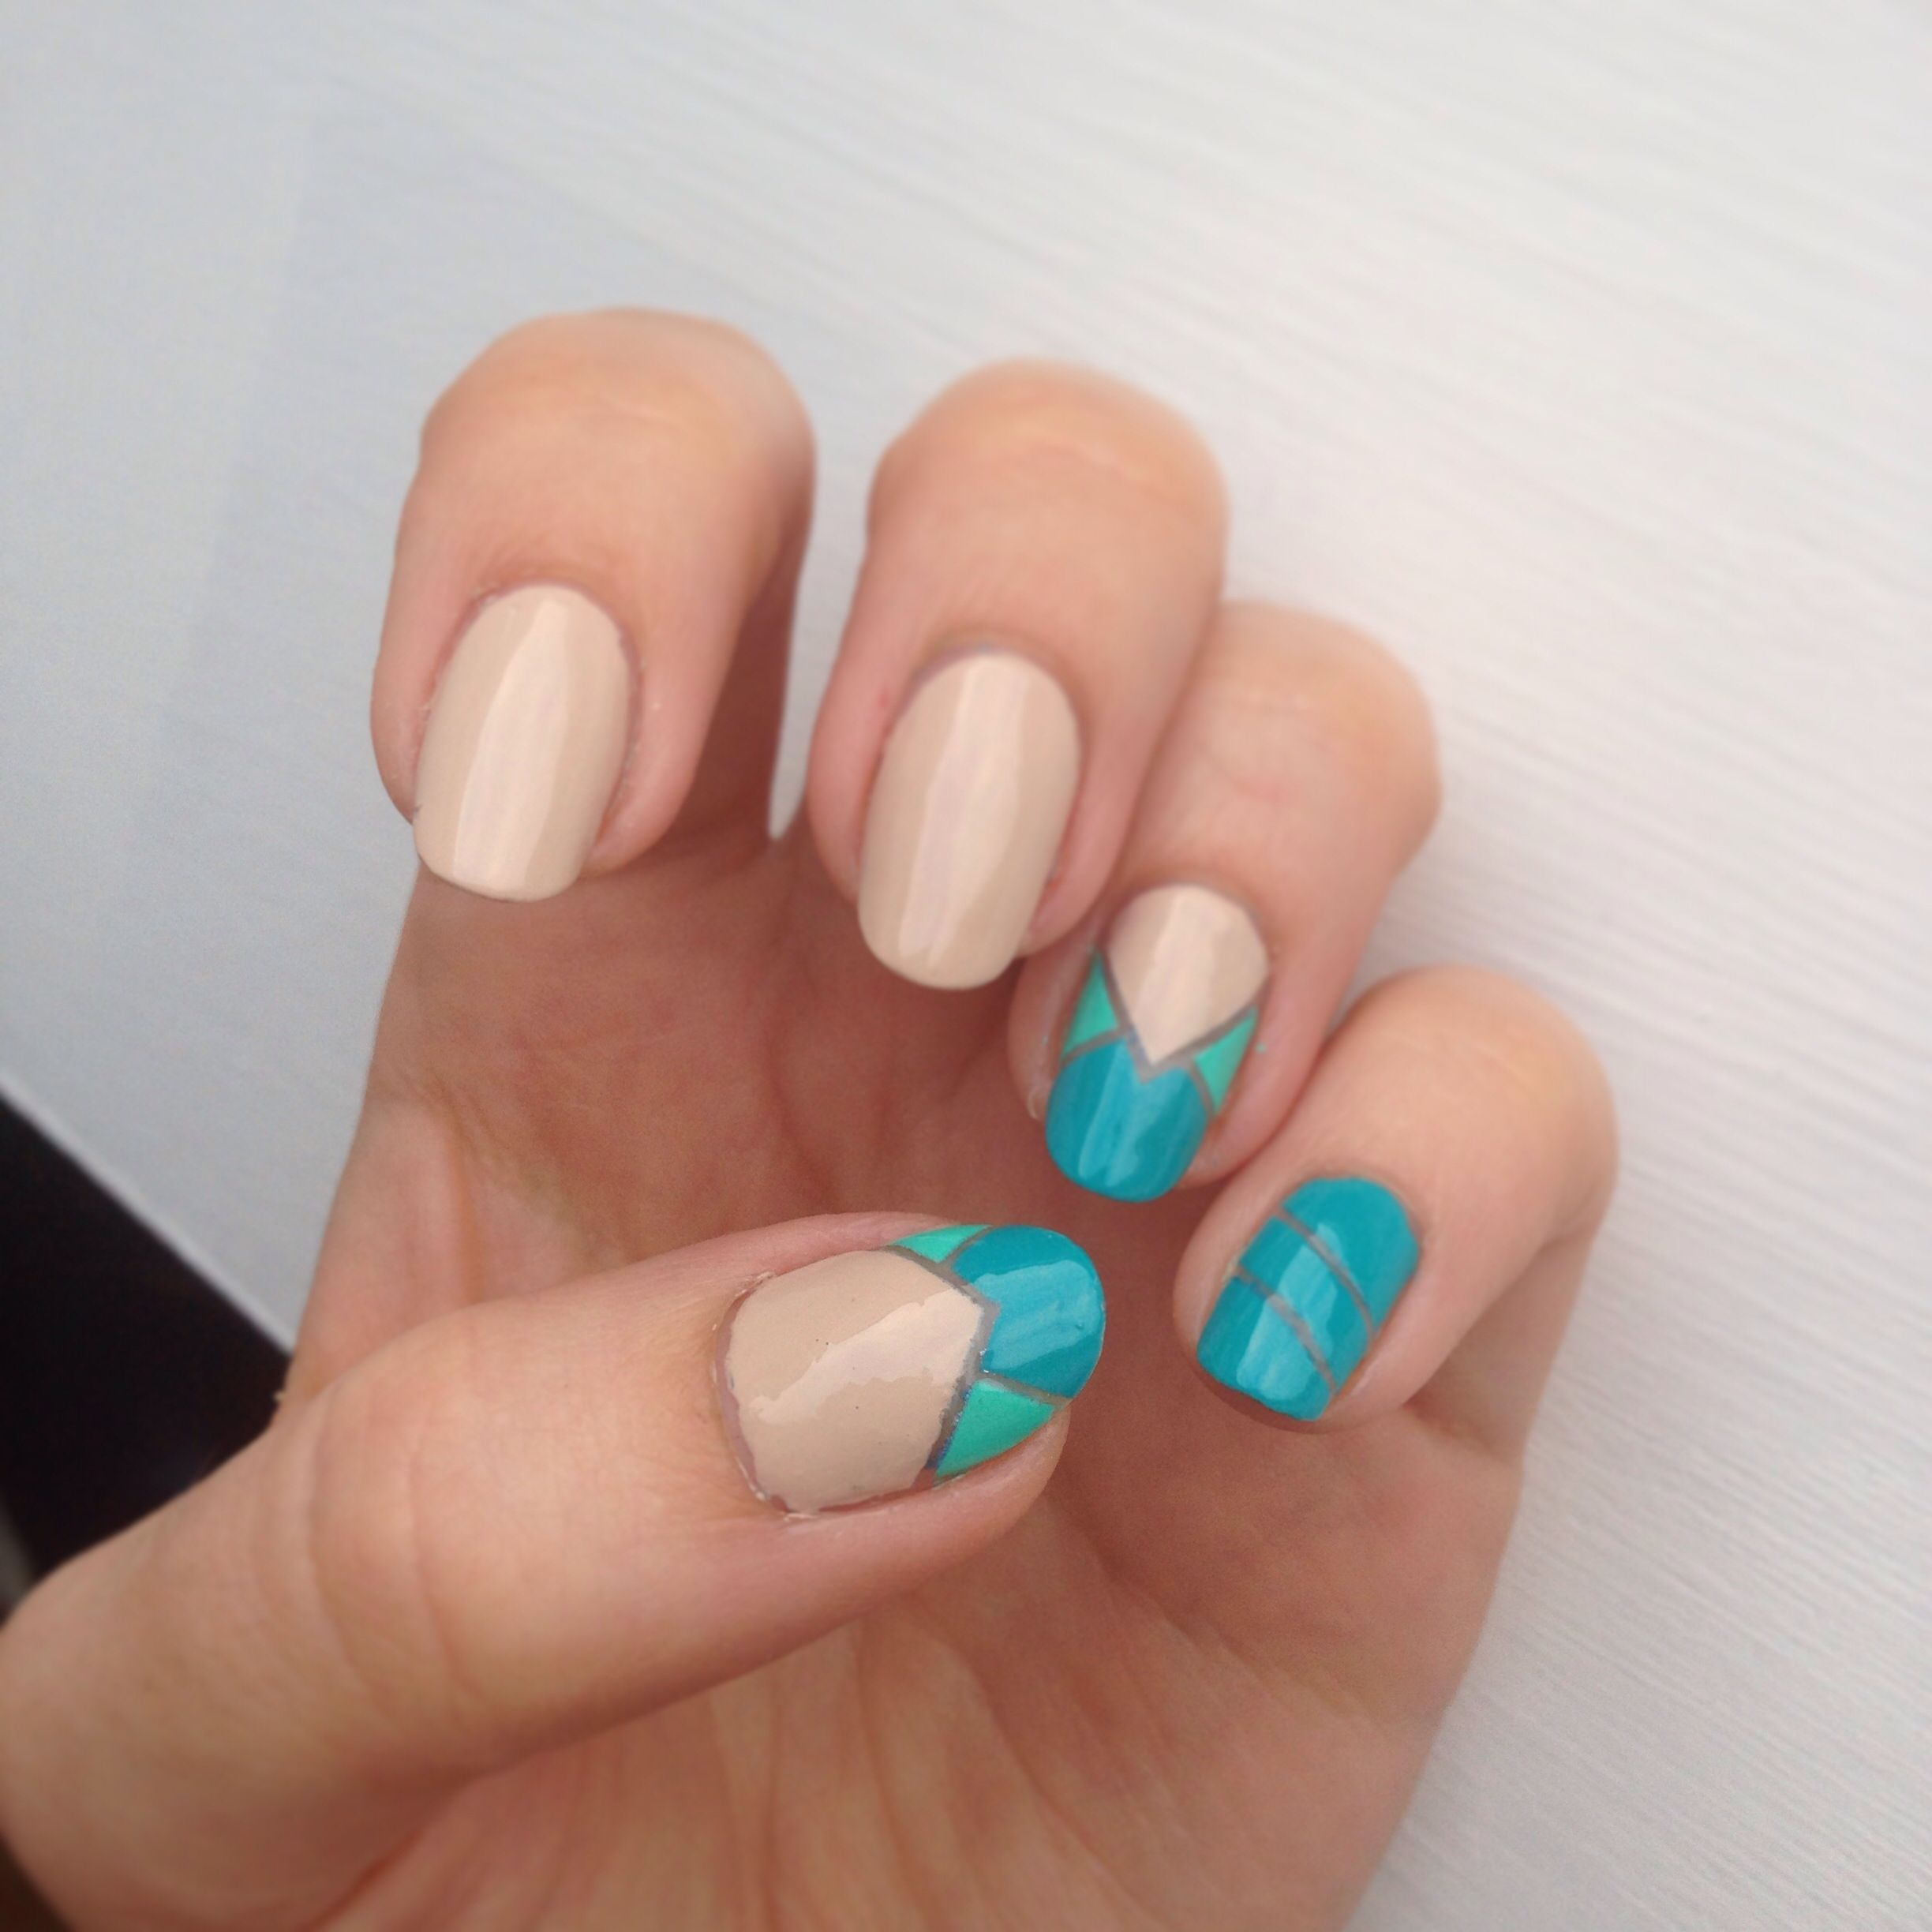 New nails design #nails nude turquoise | Nails | Pinterest